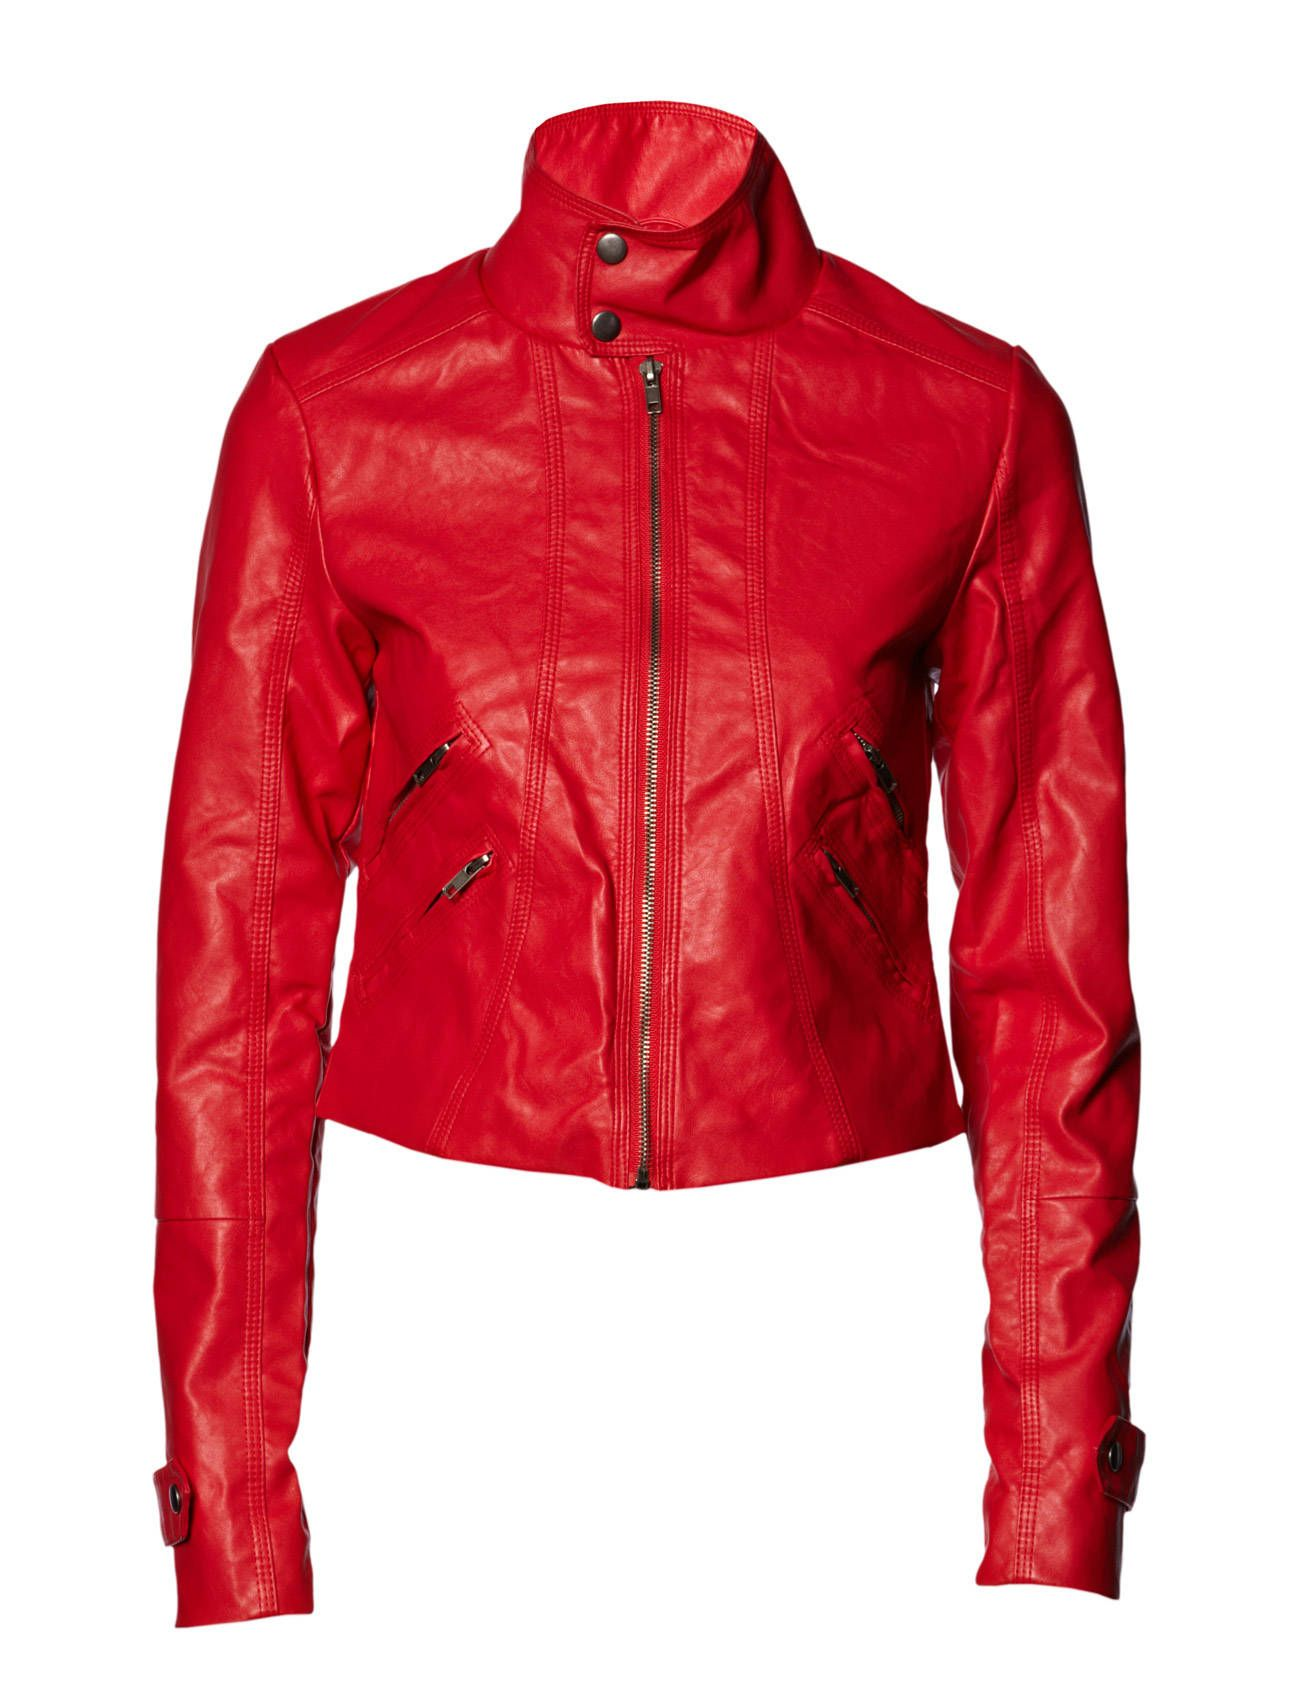 Vila - Leather jacket - Boozt.com